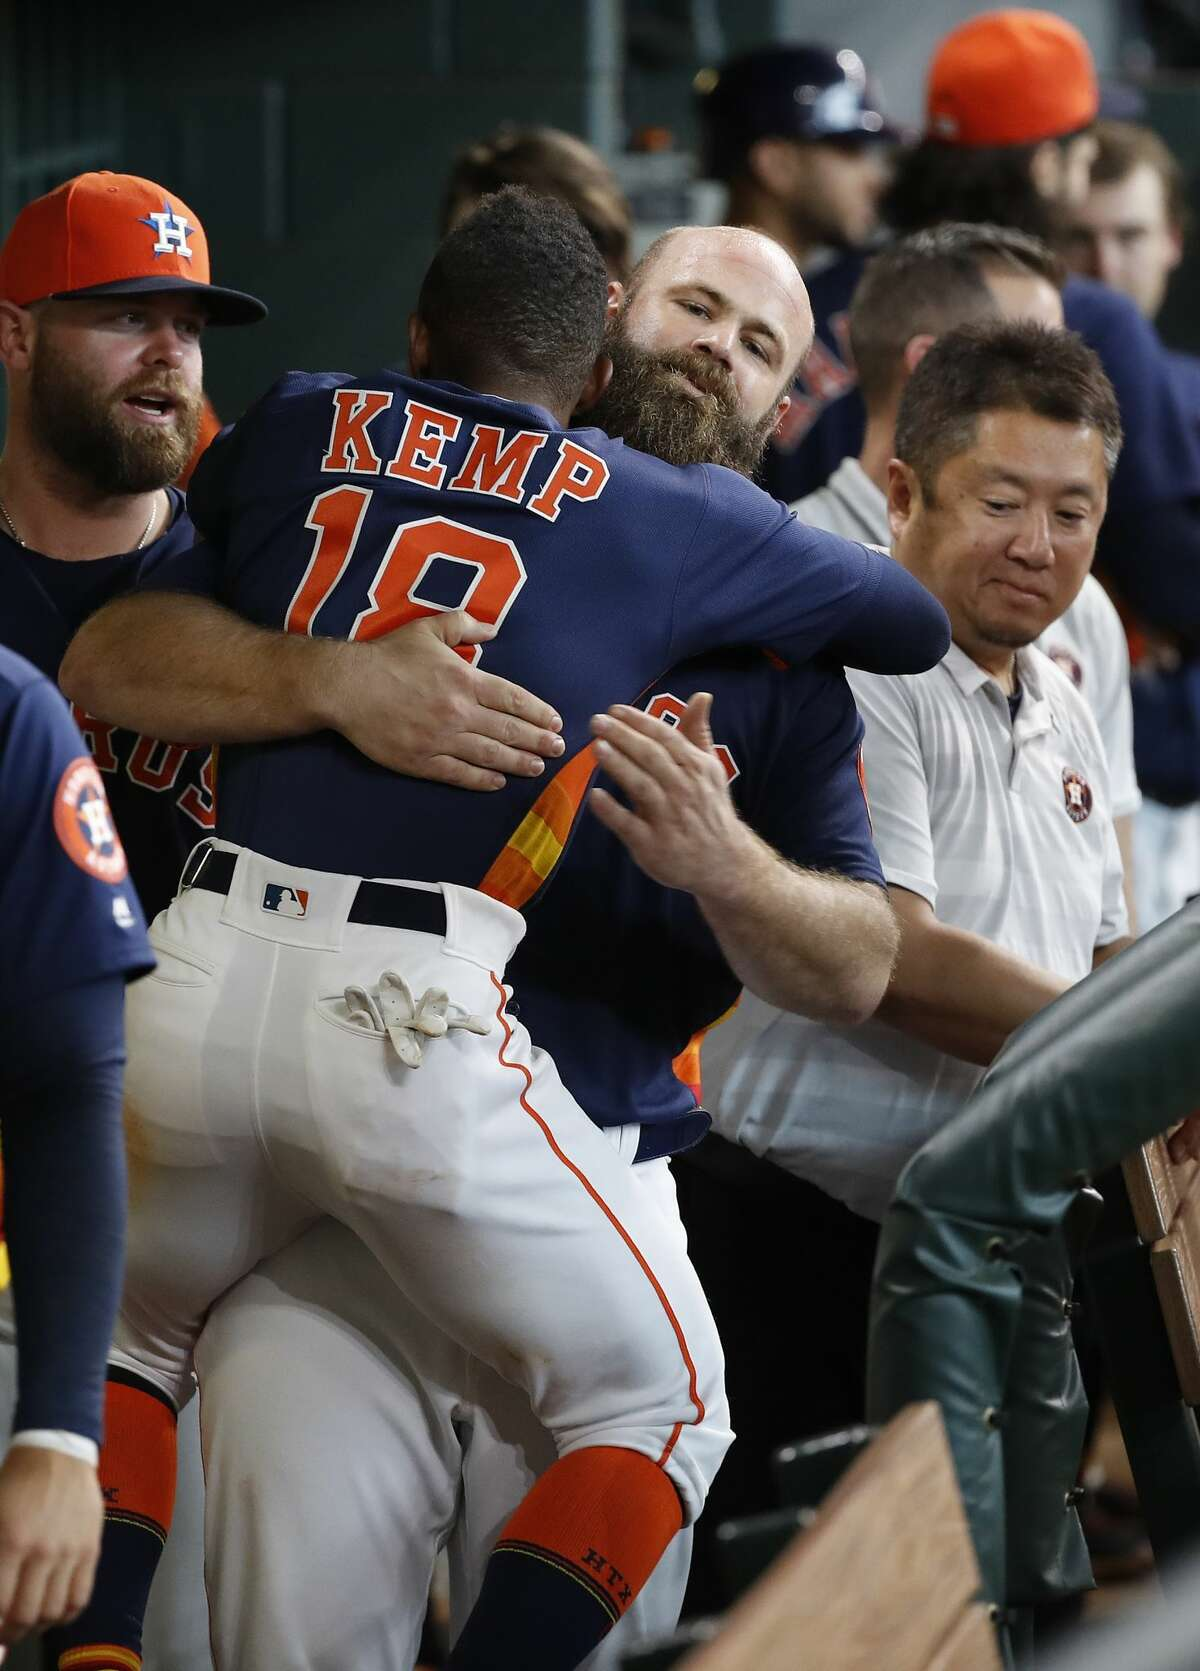 Houston Astros Tony Kemp (18) jumps on Evan Gattis (11) in the dugout after Gattis' home run during the eighth inning of an MLB game at Minute Maid Park, June 24, 2018, in Houston. ( Karen Warren / Houston Chronicle )